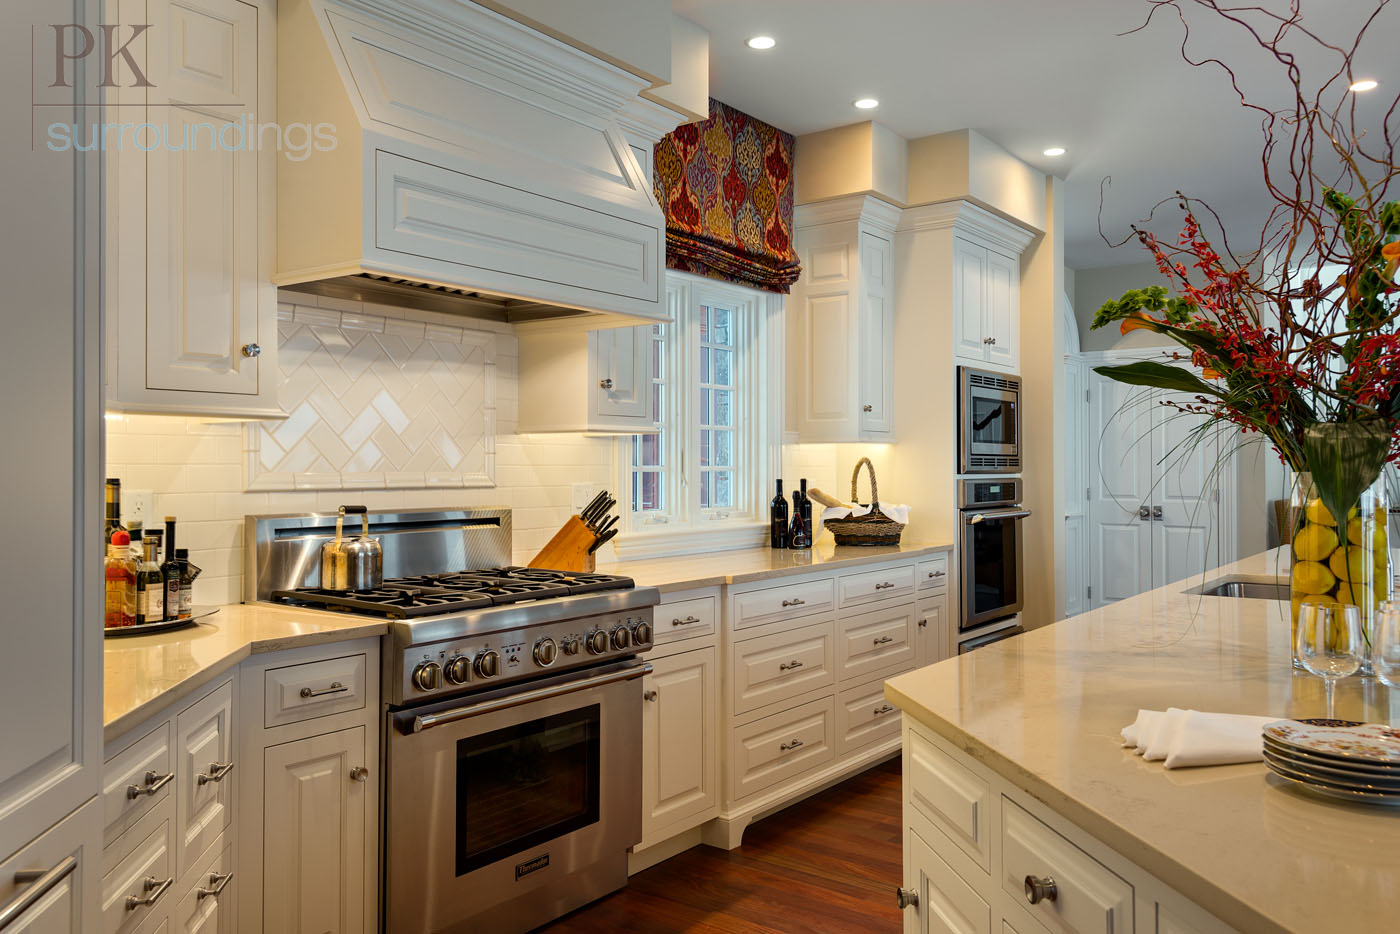 custom kitchen cabinets maine kitchen cabinets near me Custom Kitchen Cabinets Maine